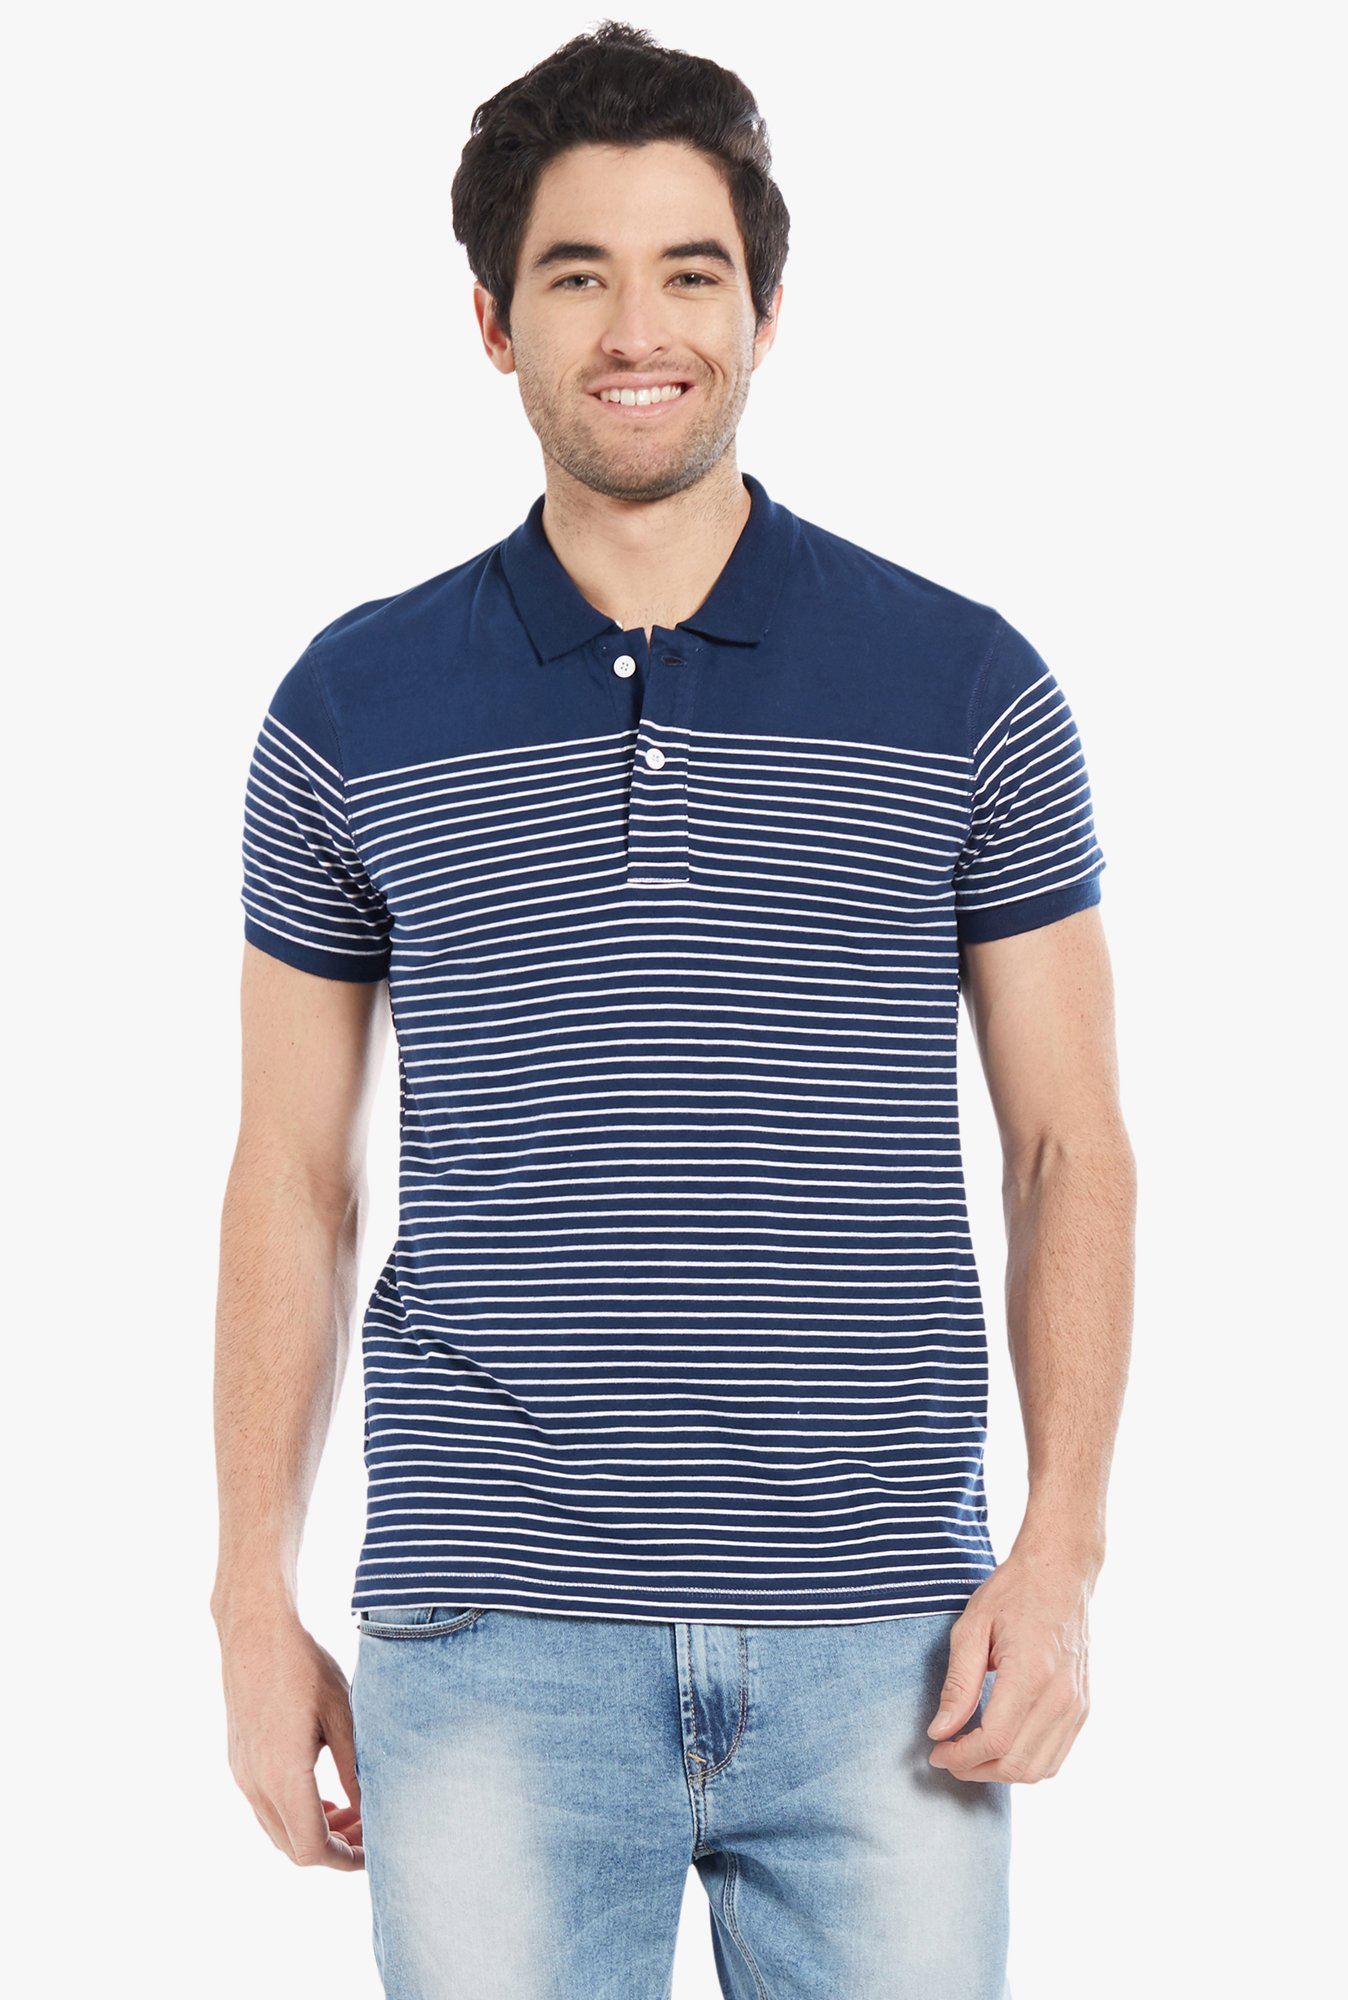 Globus Navy Striped Polo T-Shirt